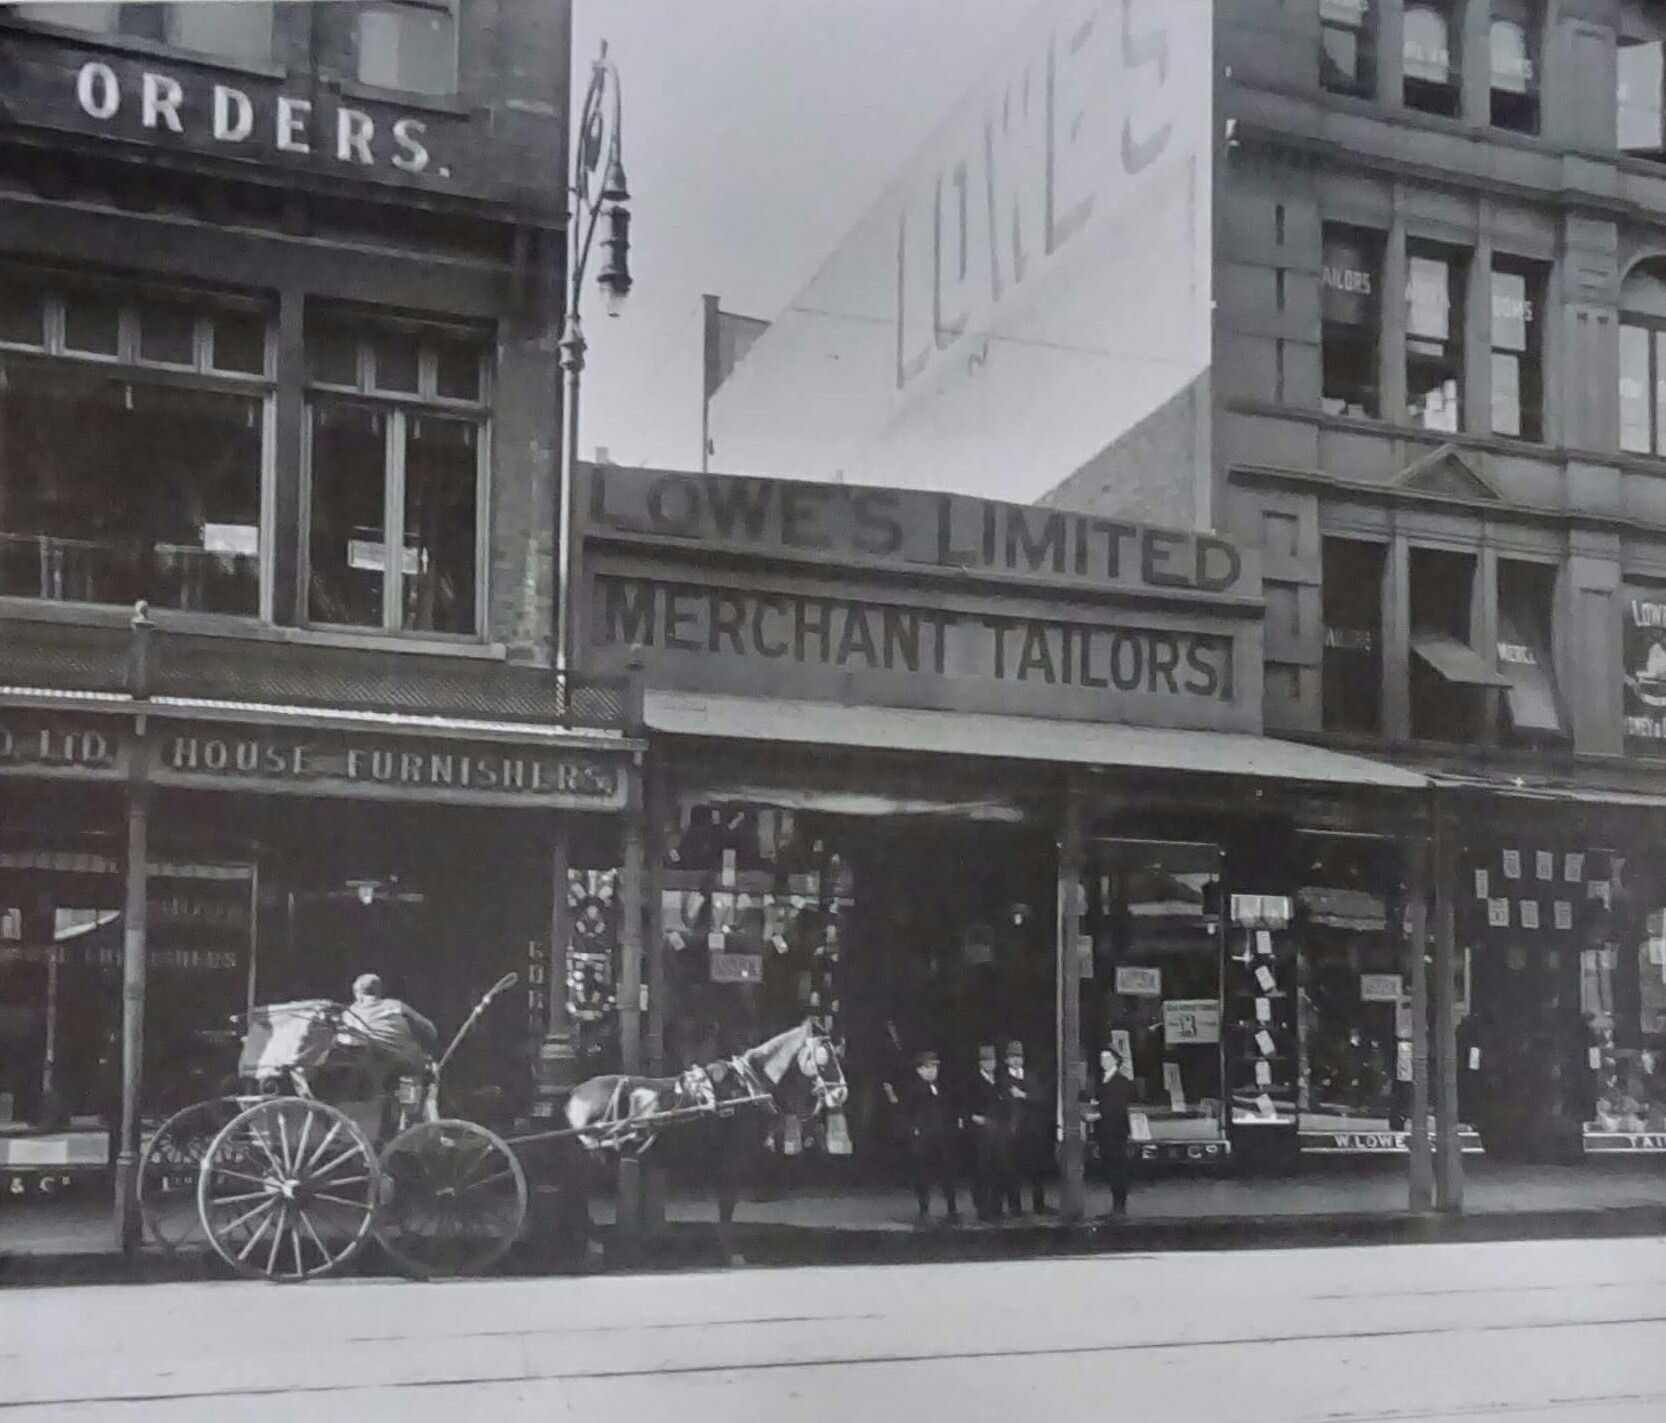 Lowes Merchant Tailors At 512 George St Sydney In 1911 Australia History Australia Historical Images